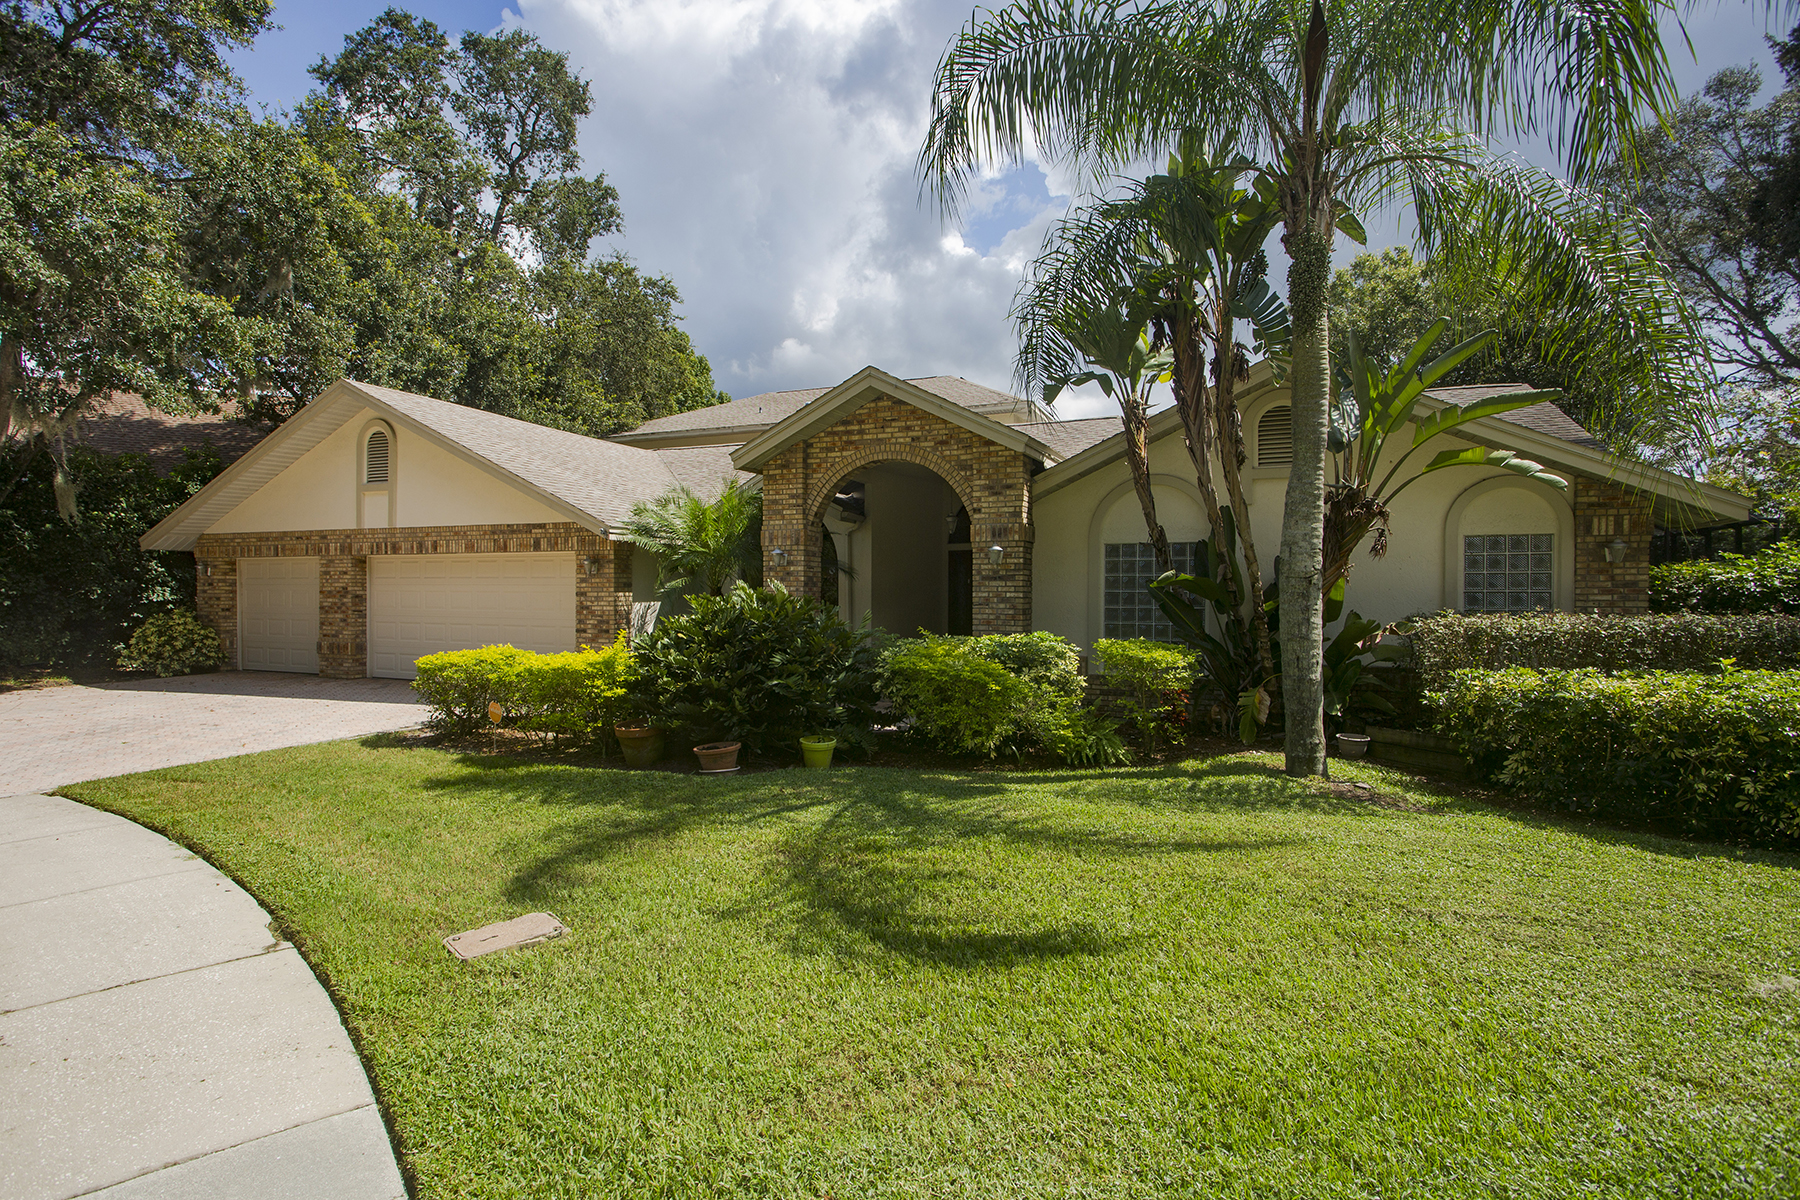 Single Family Home for Sale at CLEARWATER 2885 Chelsea Pl N Clearwater, Florida, 33759 United States